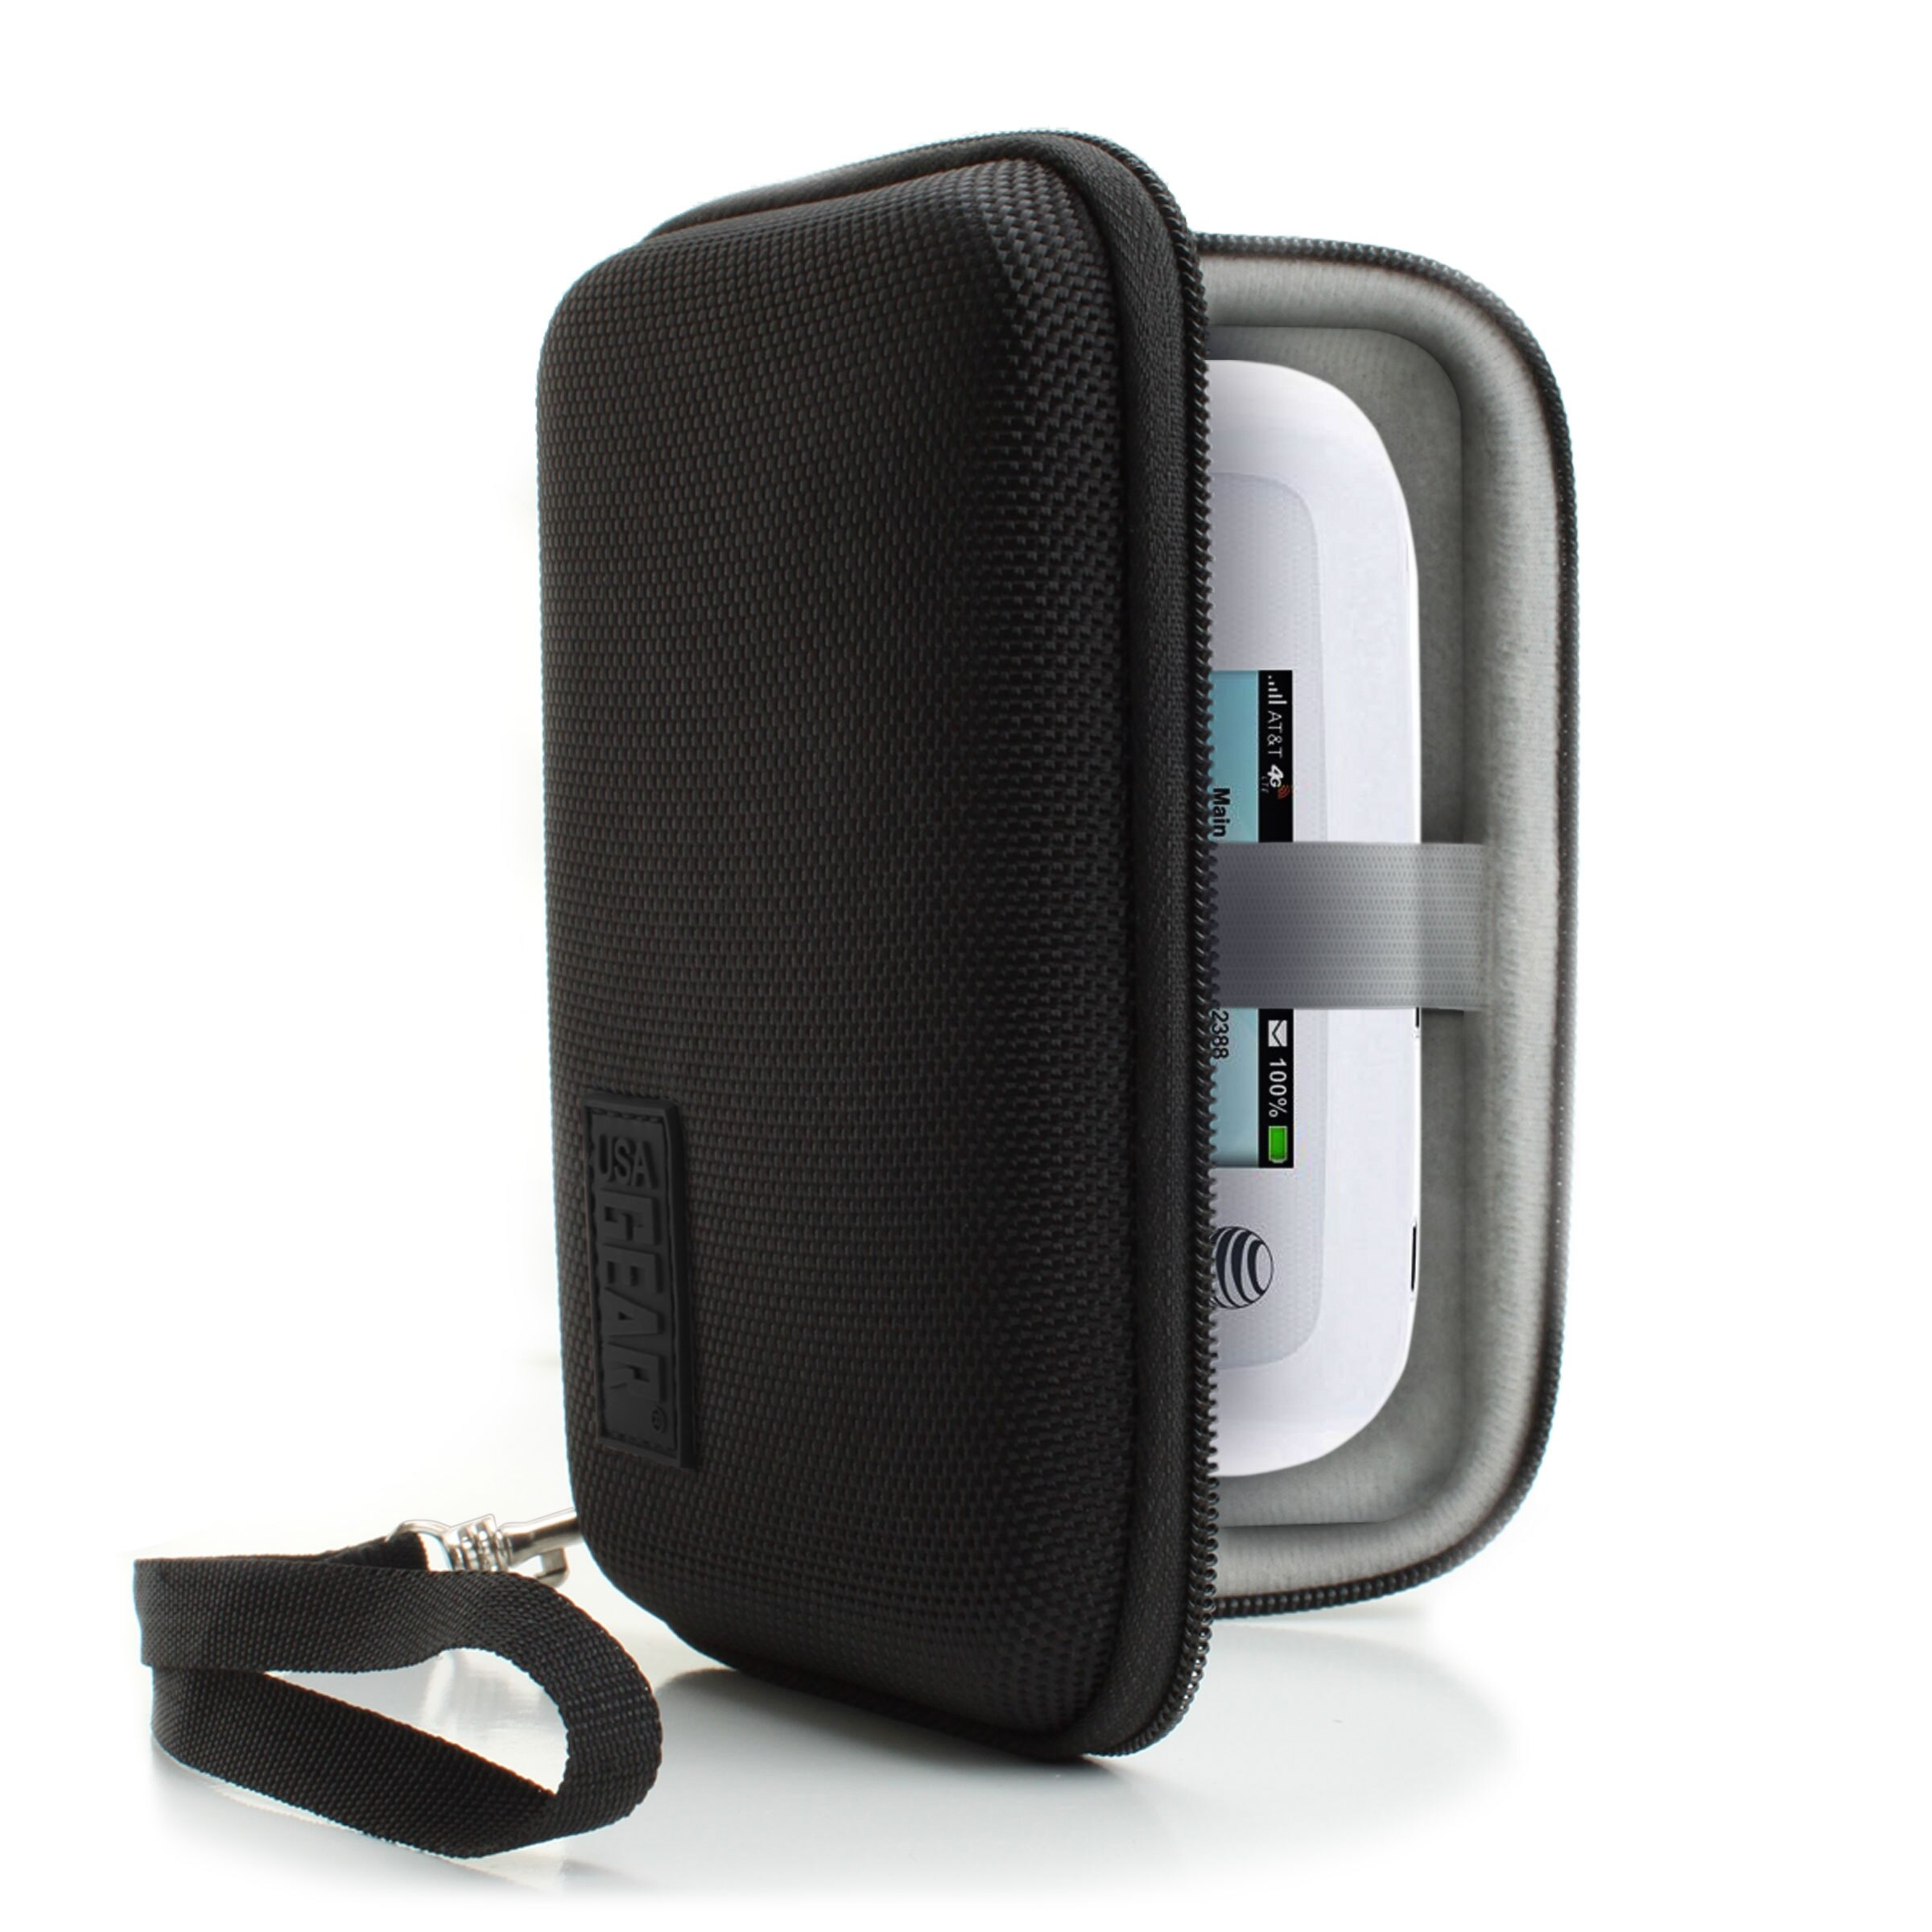 USA Gear Portable WiFi Hotspot Carrying Case with Wrist Strap - Compatible  w/ 4G LTE Wi-Fi Mobile Hotspots from AT&T, Verizon, Sprint, T-Mobile,